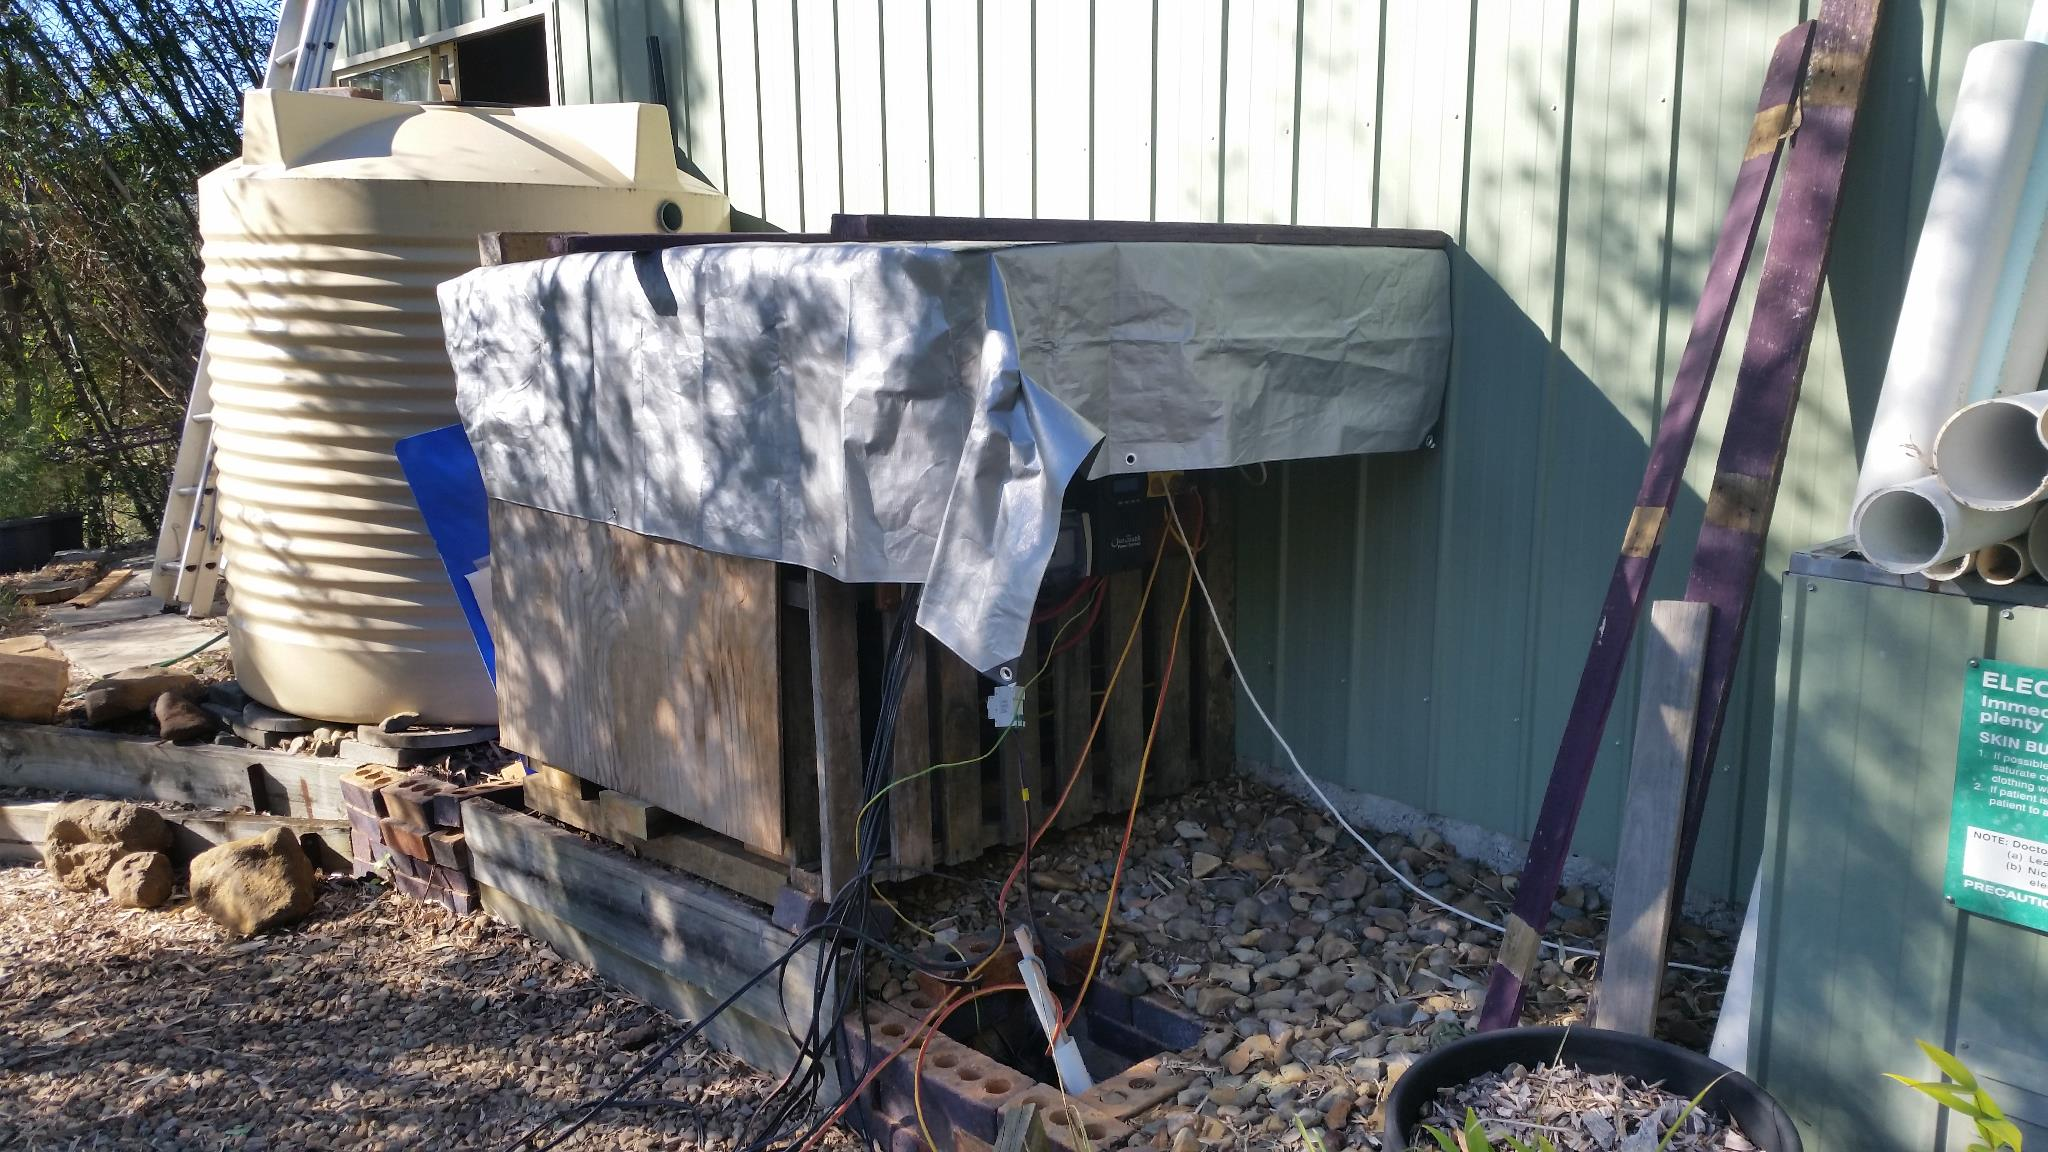 The 'quick and dirty' Solar Box